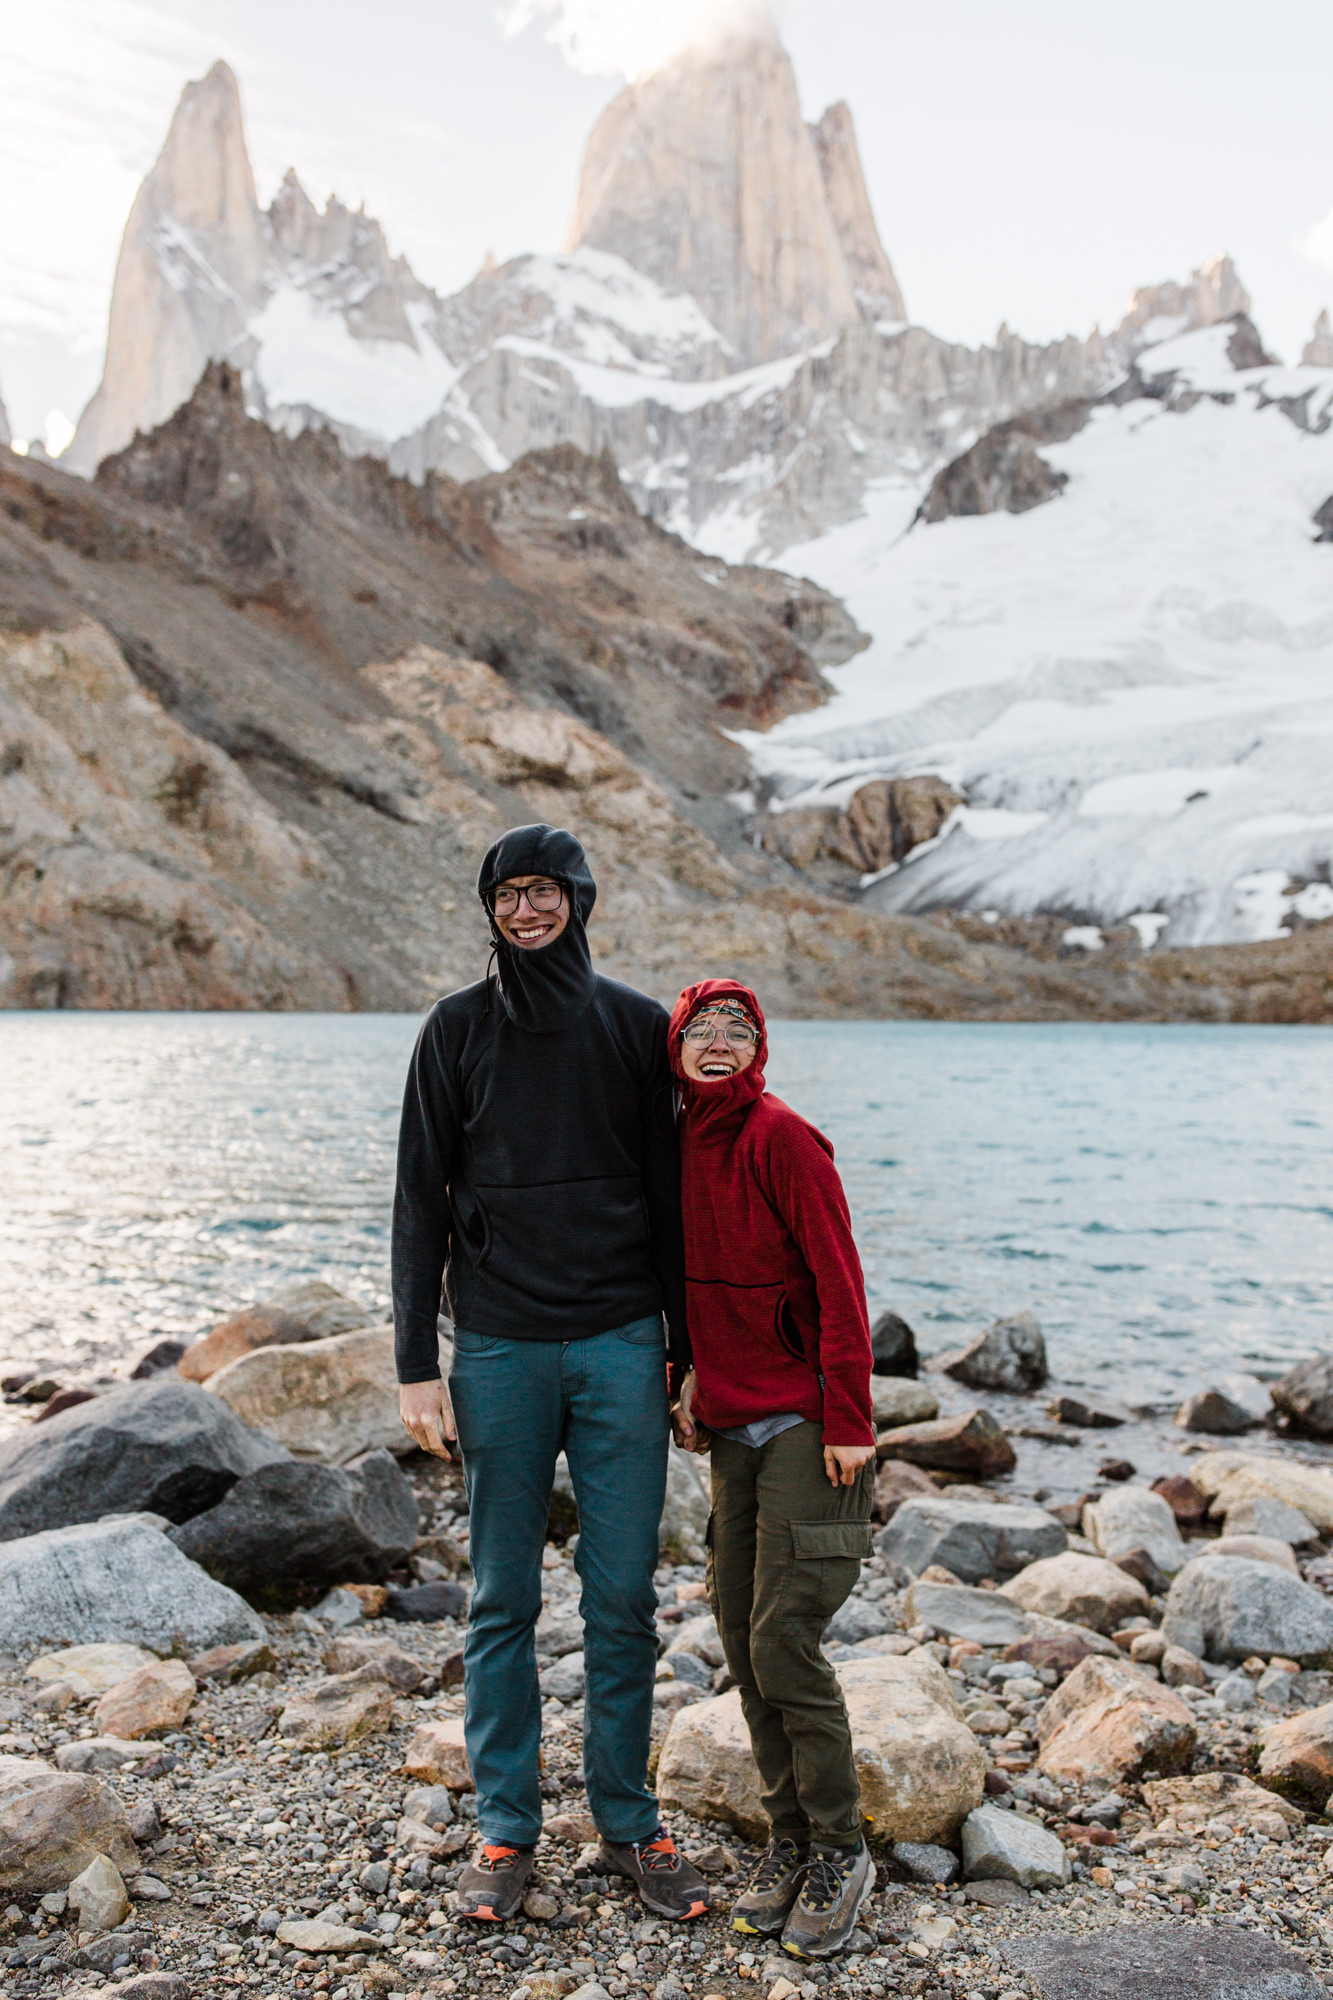 backpacking near Fitz Roy in Patagonia | Camp Poincenot + Lago De Los Tres | adventure elopement inspiration | the hearnes adventure wedding photography